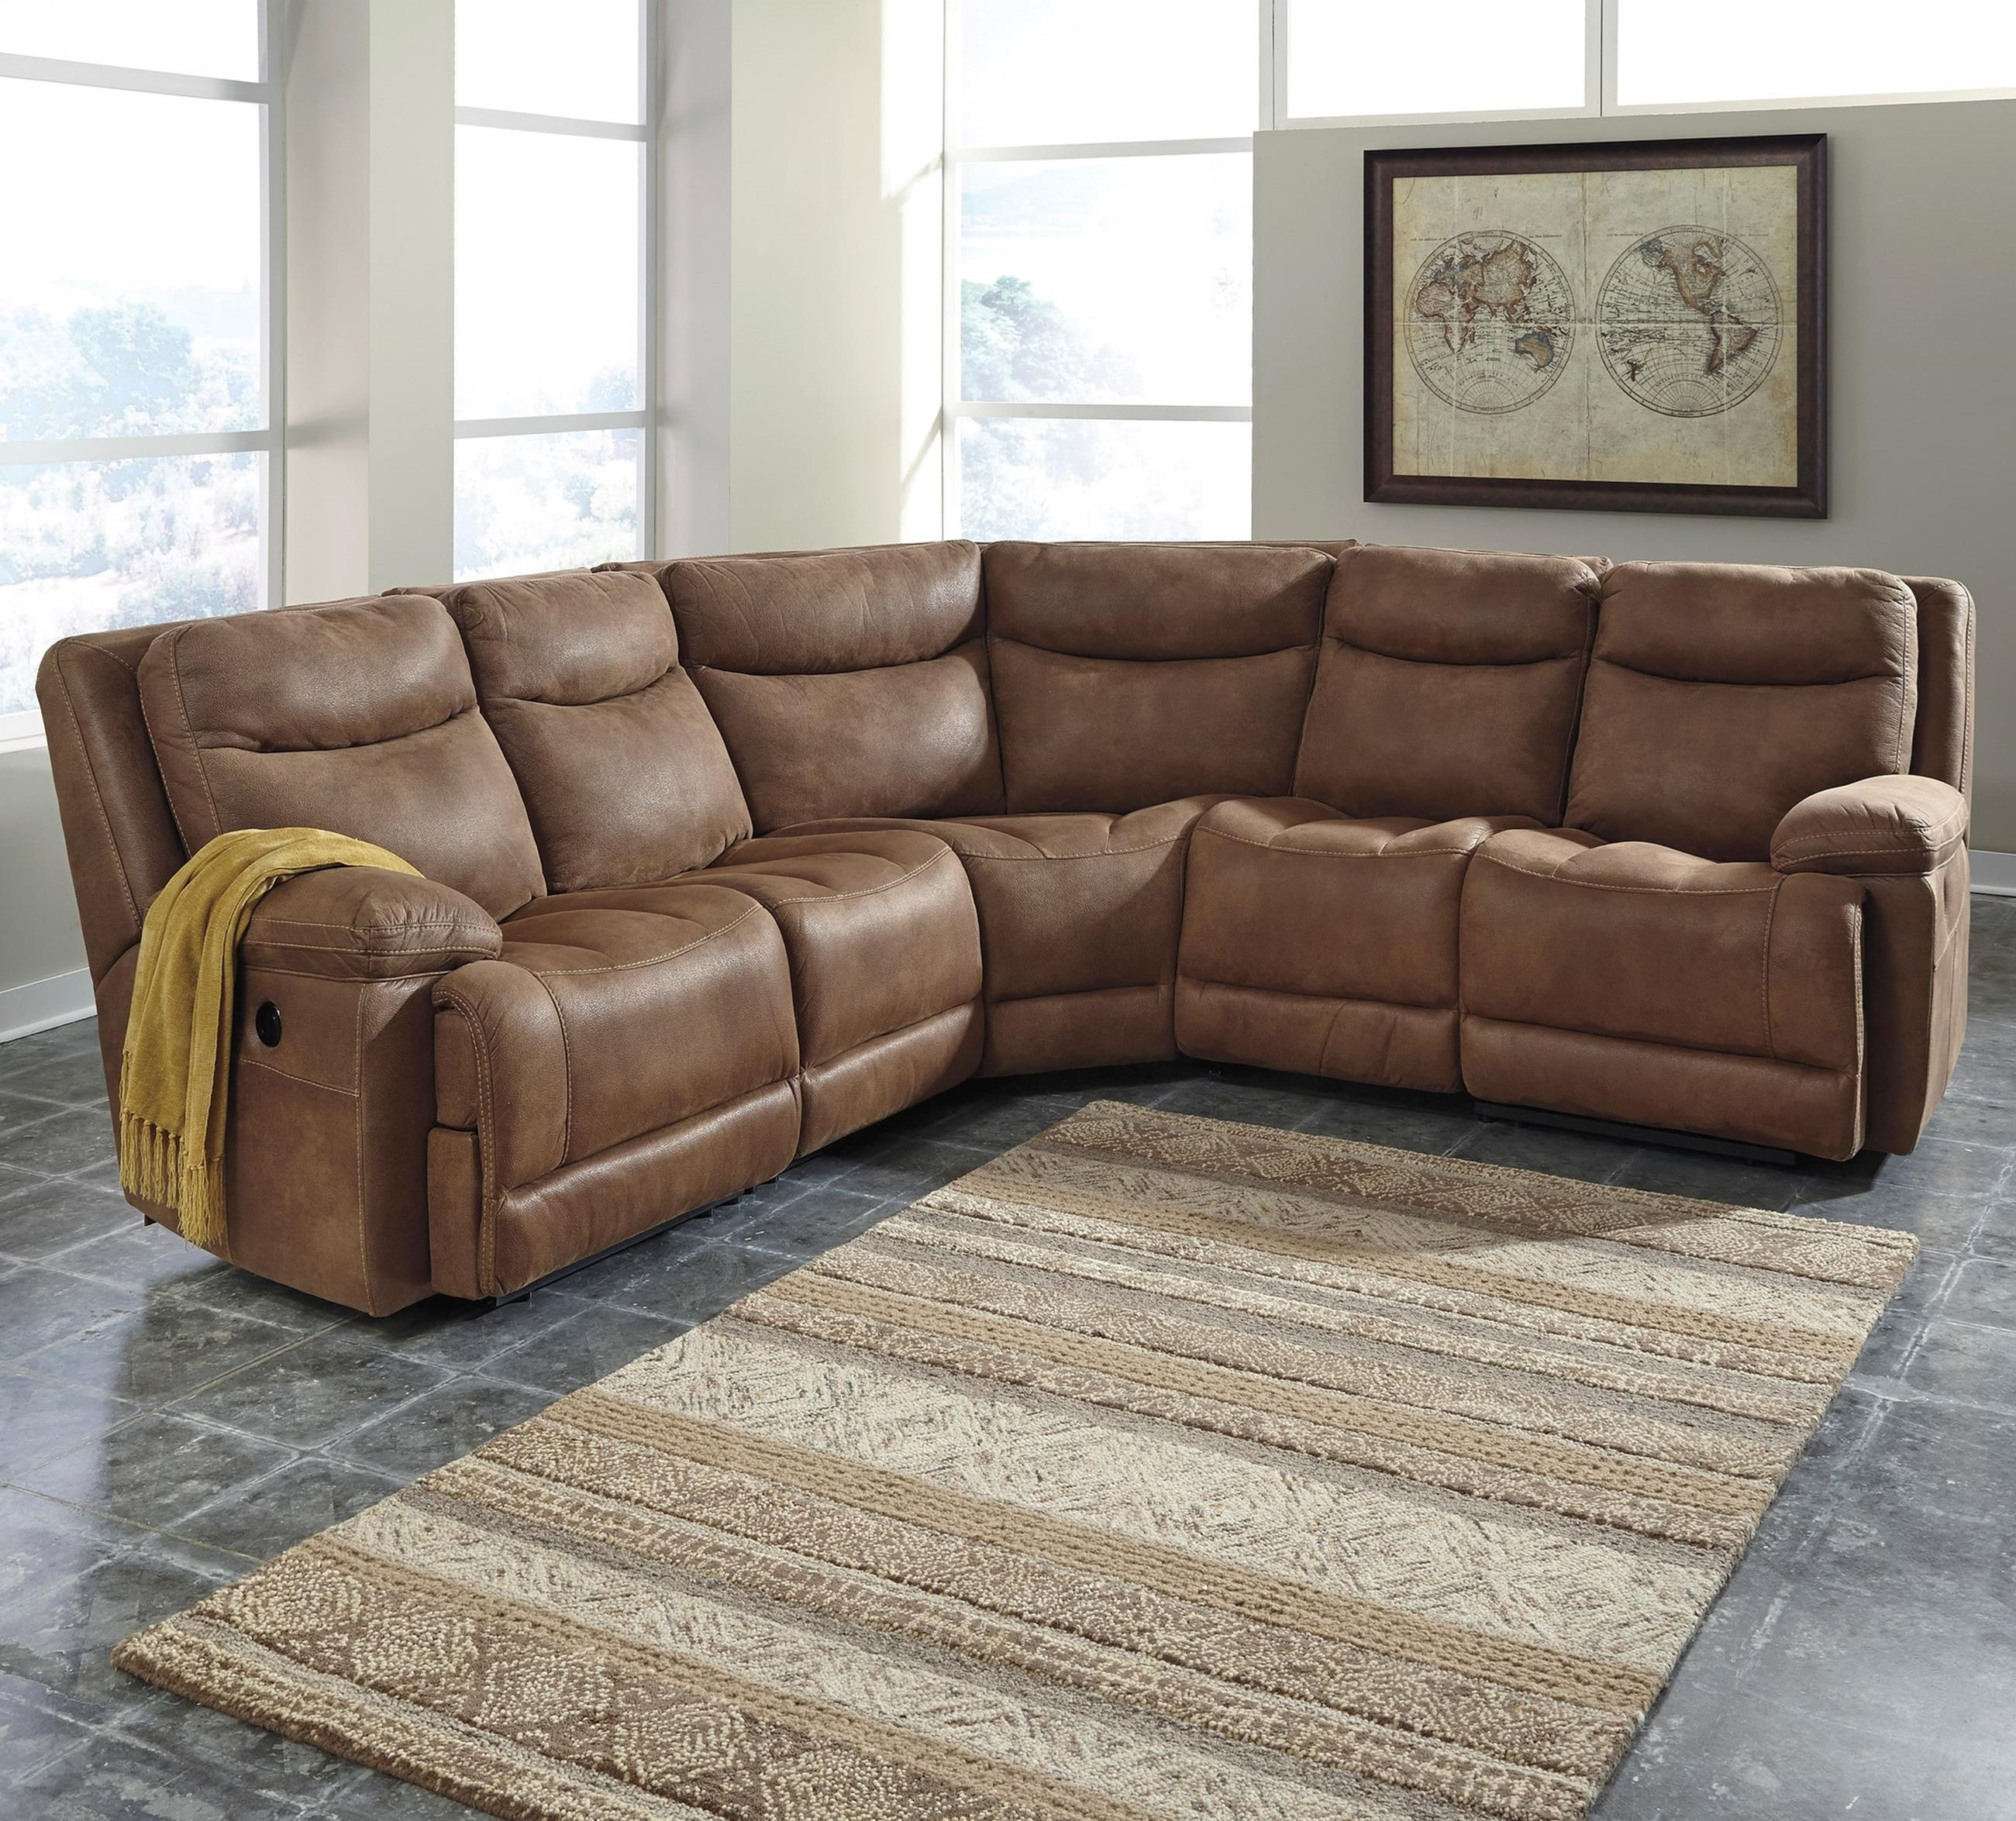 Signature design by ashley valto 5 piece reclining for 5 piece reclining sectional sofa